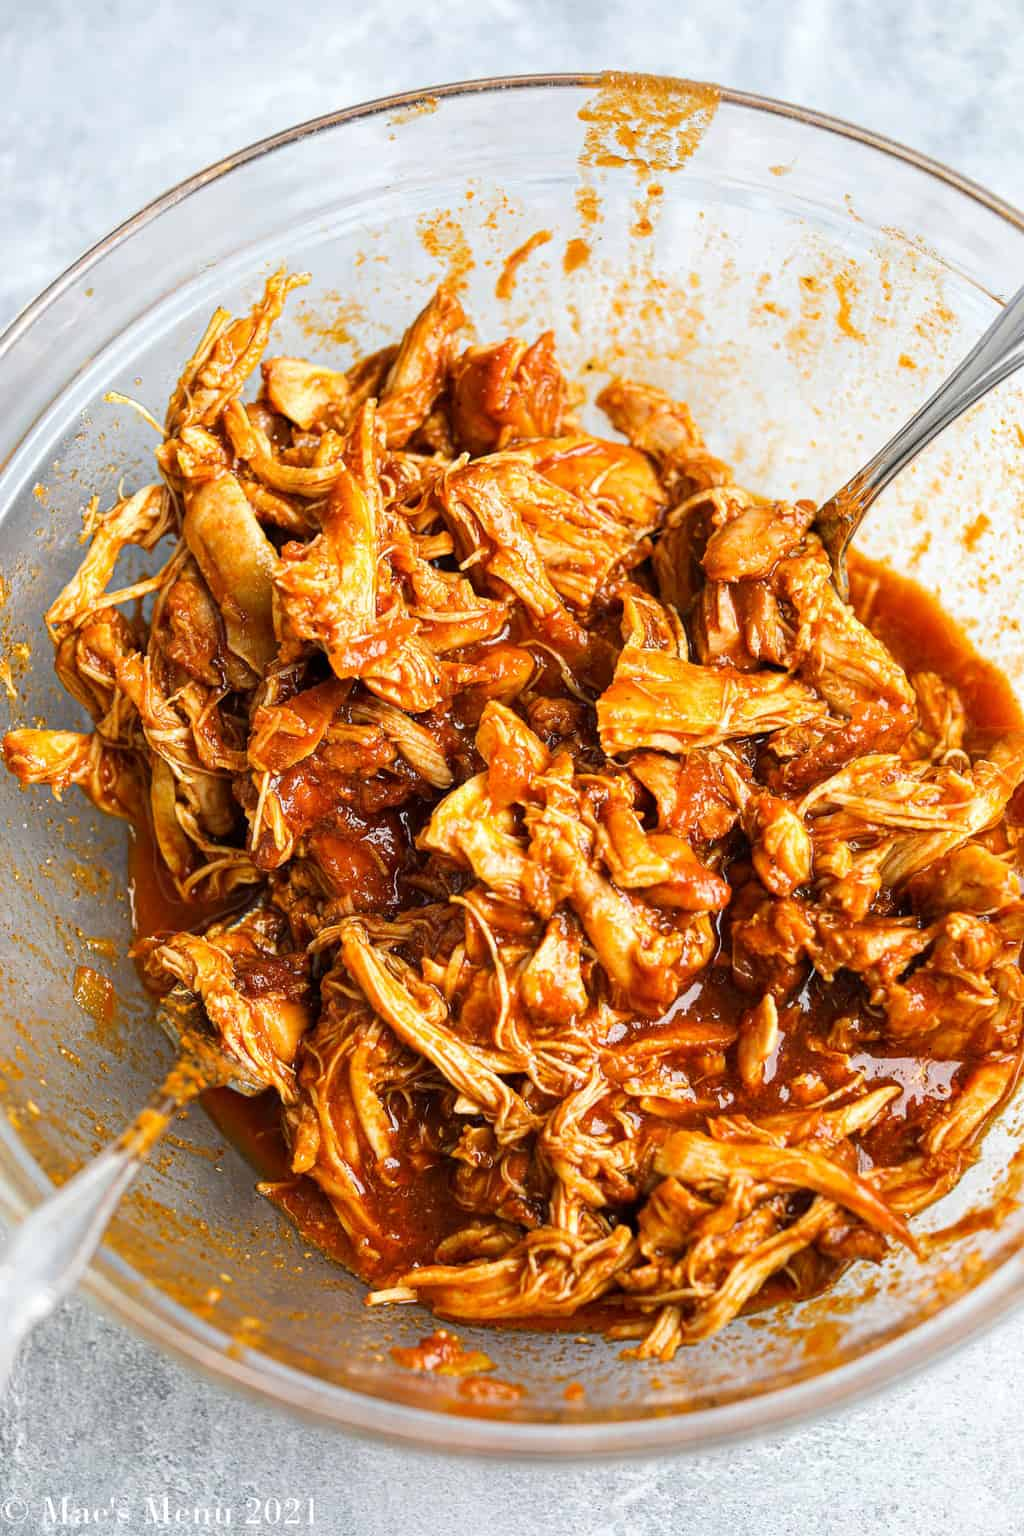 An up-close overheat shot of a glass bowl of shredded barbecue chicken